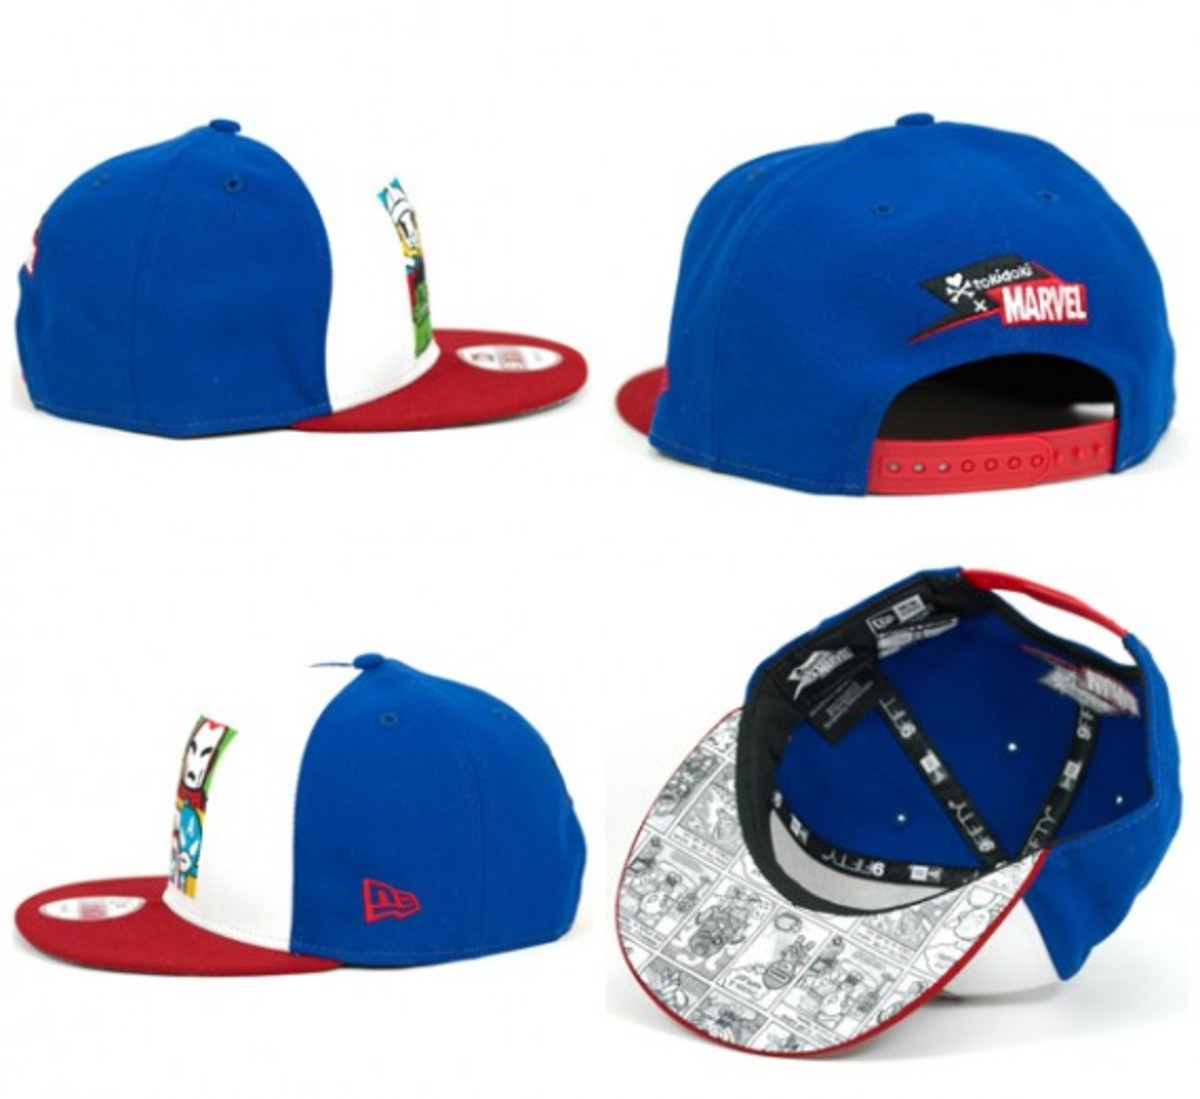 tokidoki-marvel-new-era-9fifty-snapback-caps-collection-03